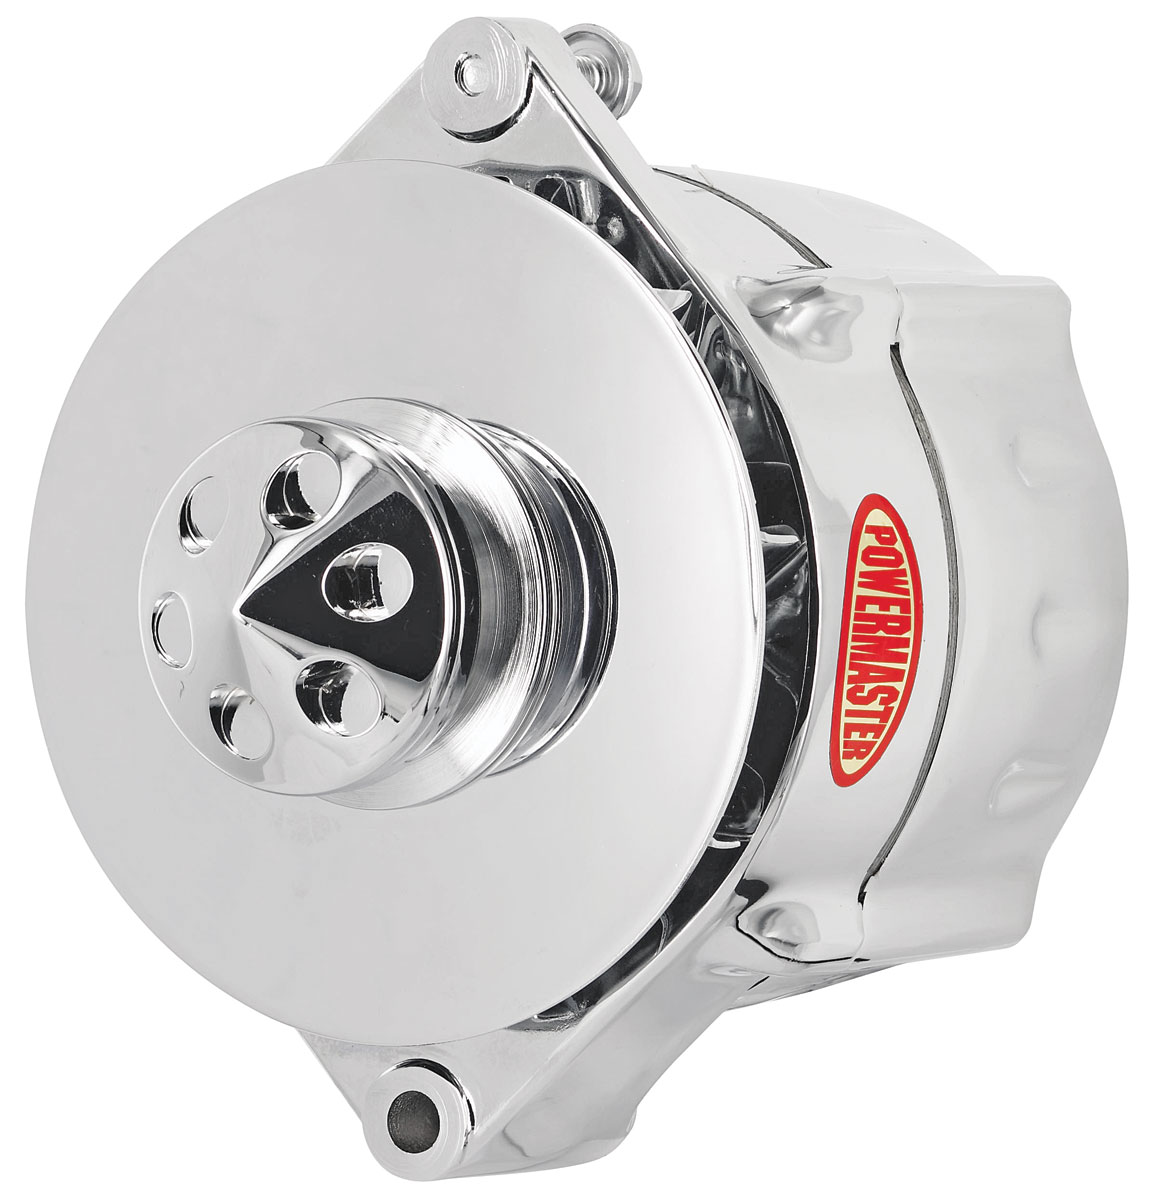 Photo of Alternator (Smooth Look) 1-Groove Pulley (Chrome Finish, 150-AMP)